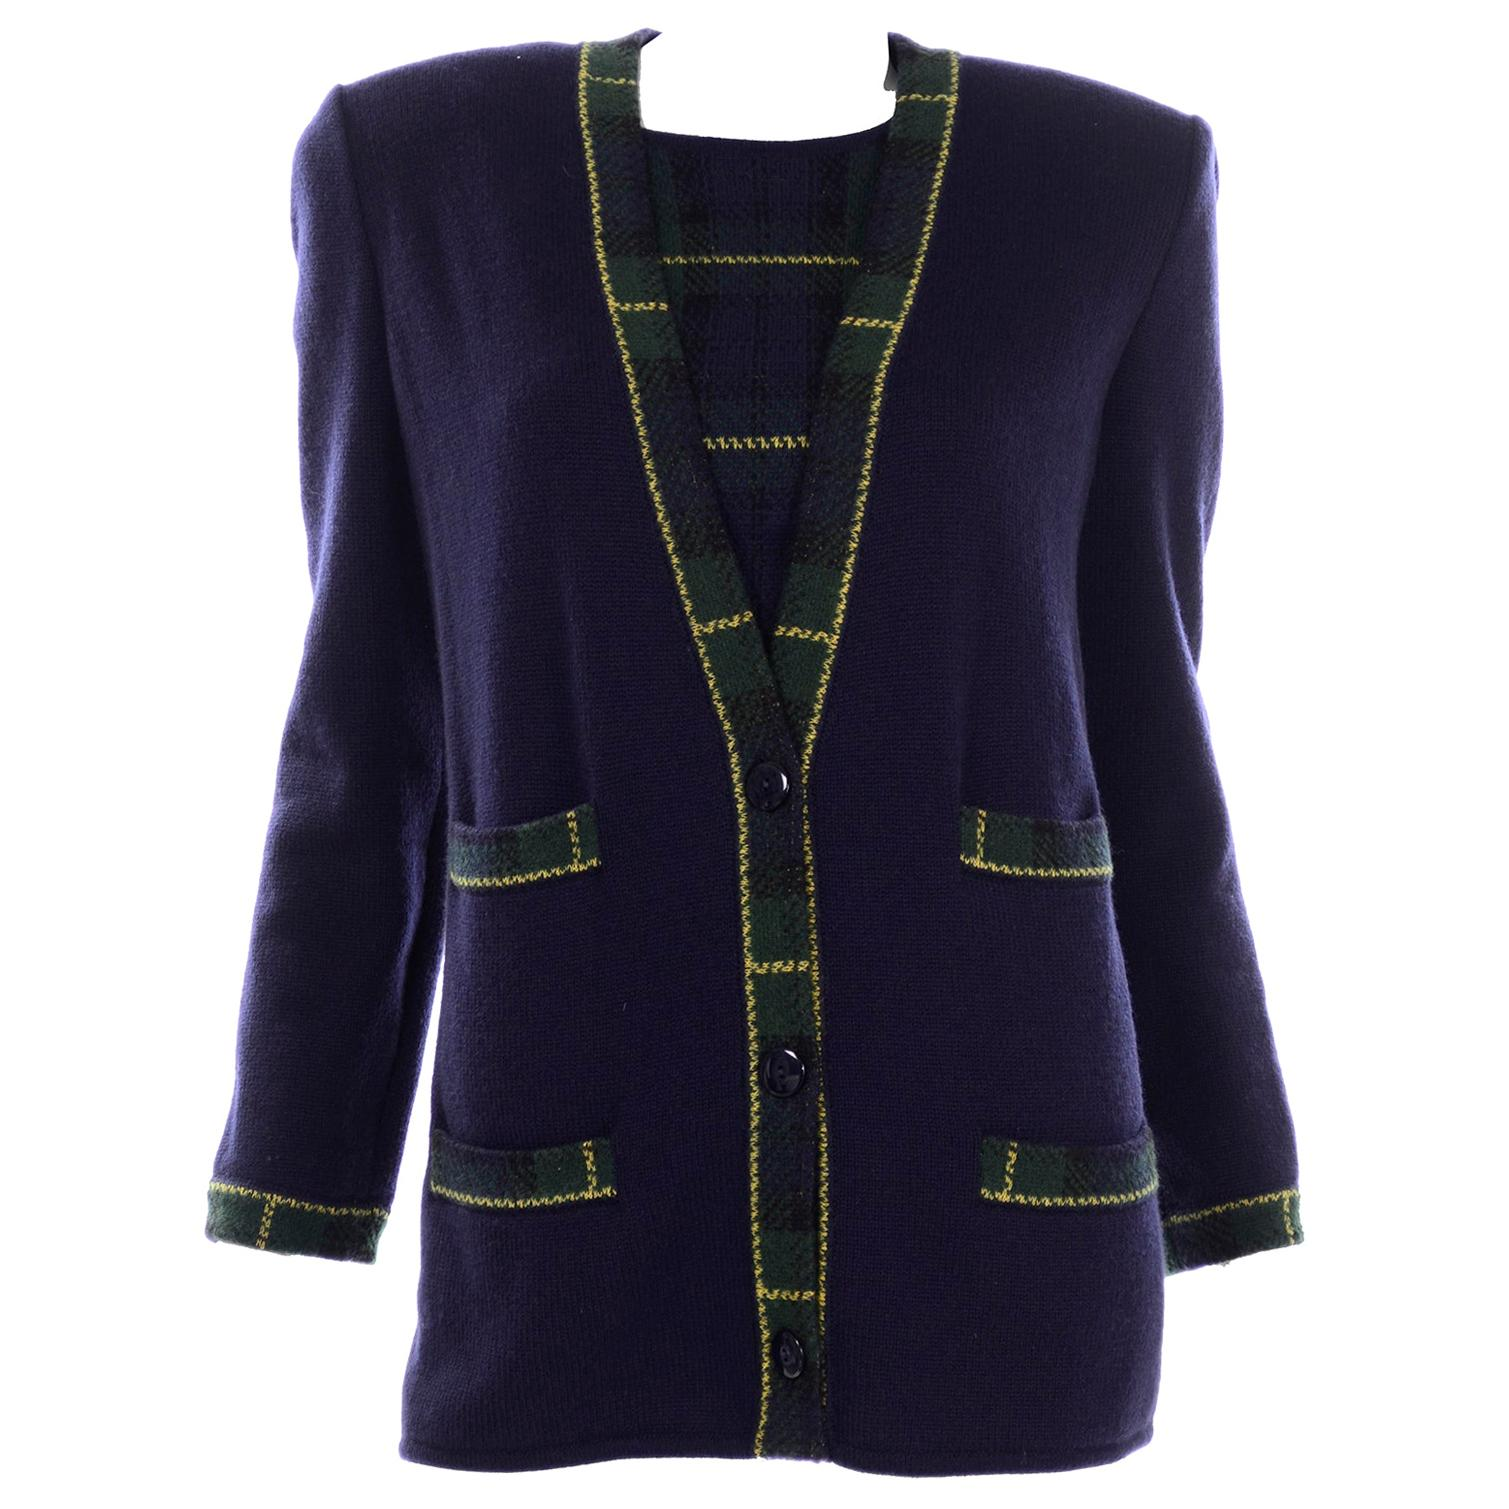 Valentino 2pc Vintage Long Sleeve Top & Cardigan Sweater in Blue & Green Plaid